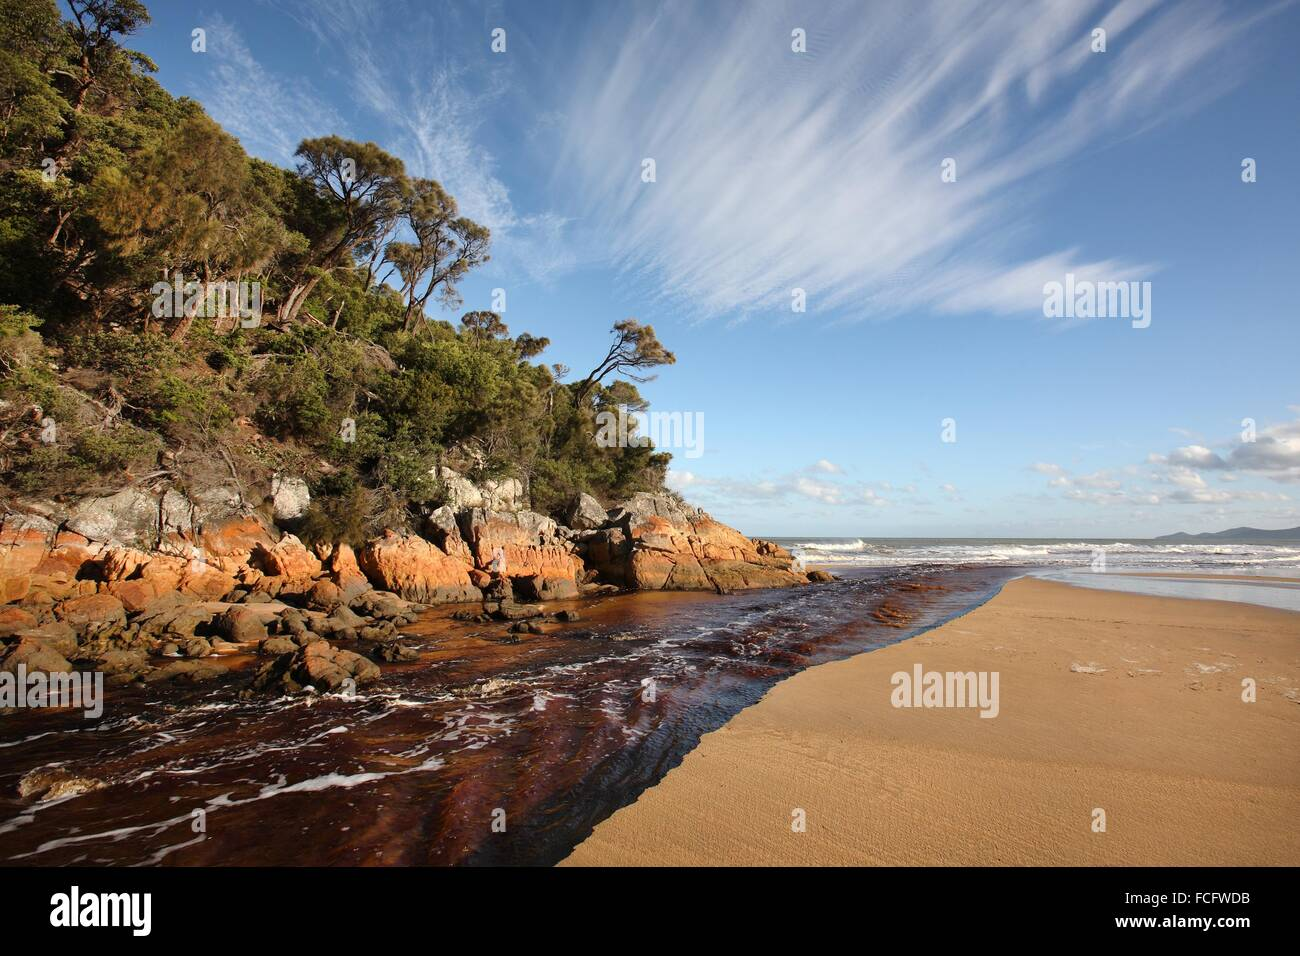 River with tannin colored water at Five Mile Beach. Wilsons Promontory National Park. Victoria, Australia. Stock Photo